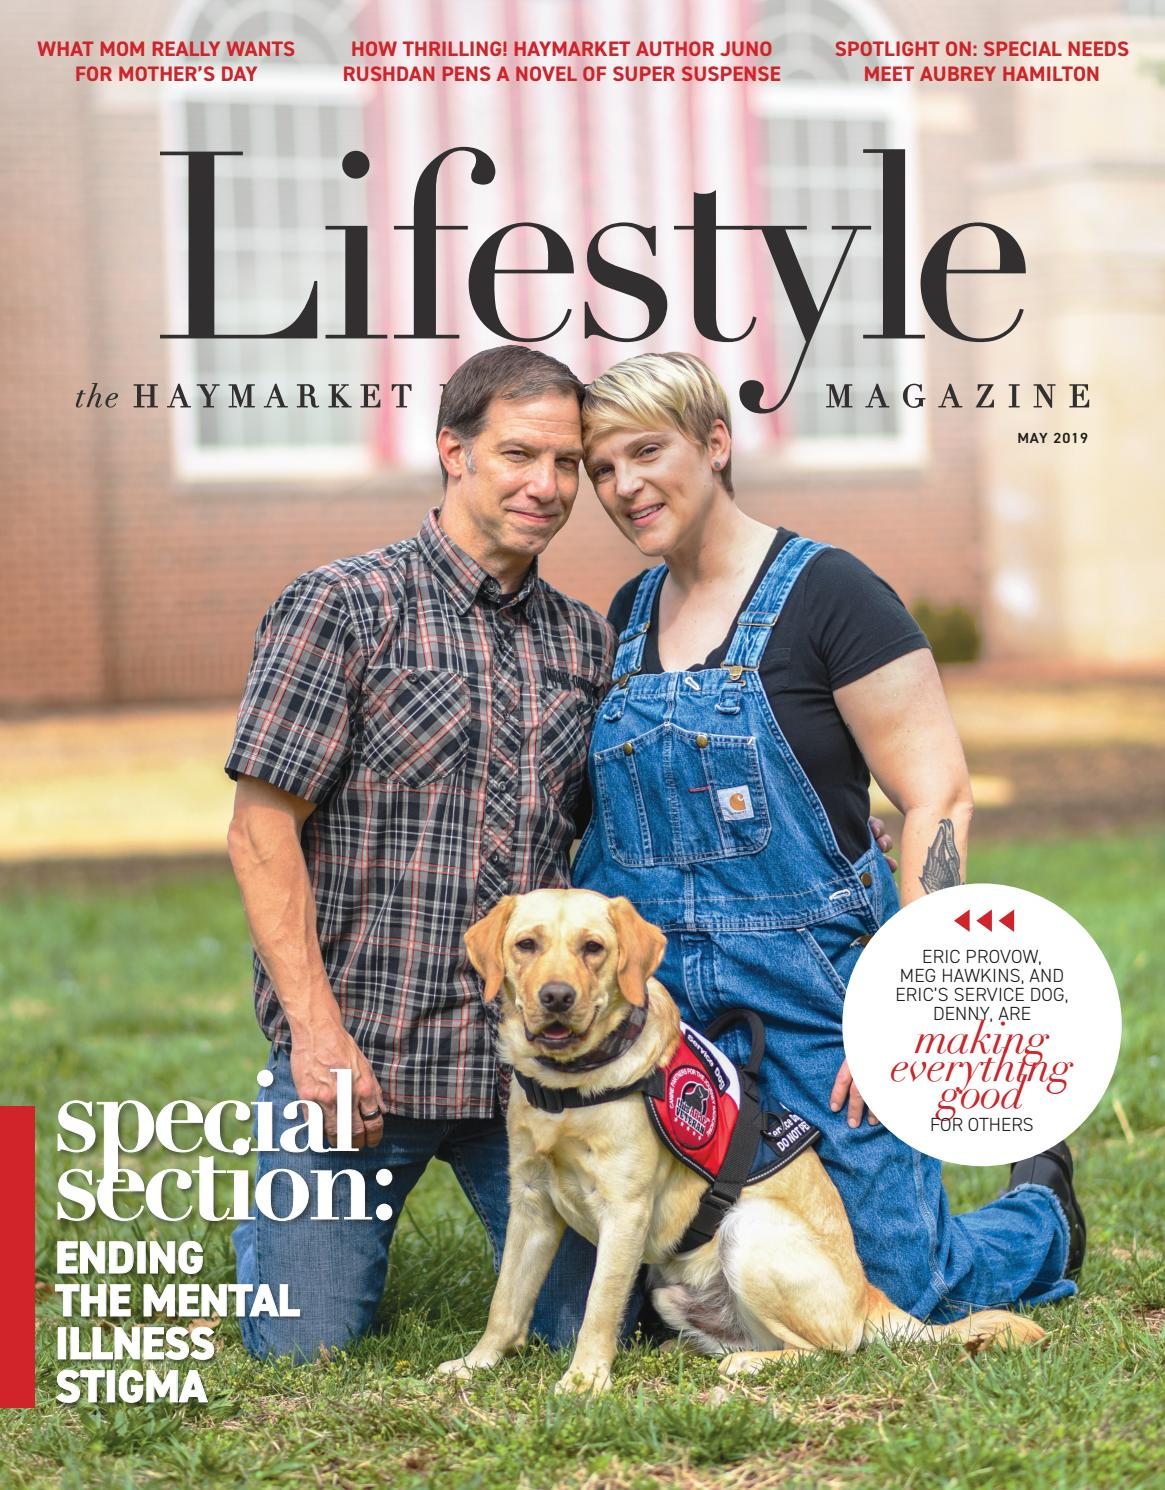 Haymarket lifestyle magazine may 2019 by piedmont publishing group issuu